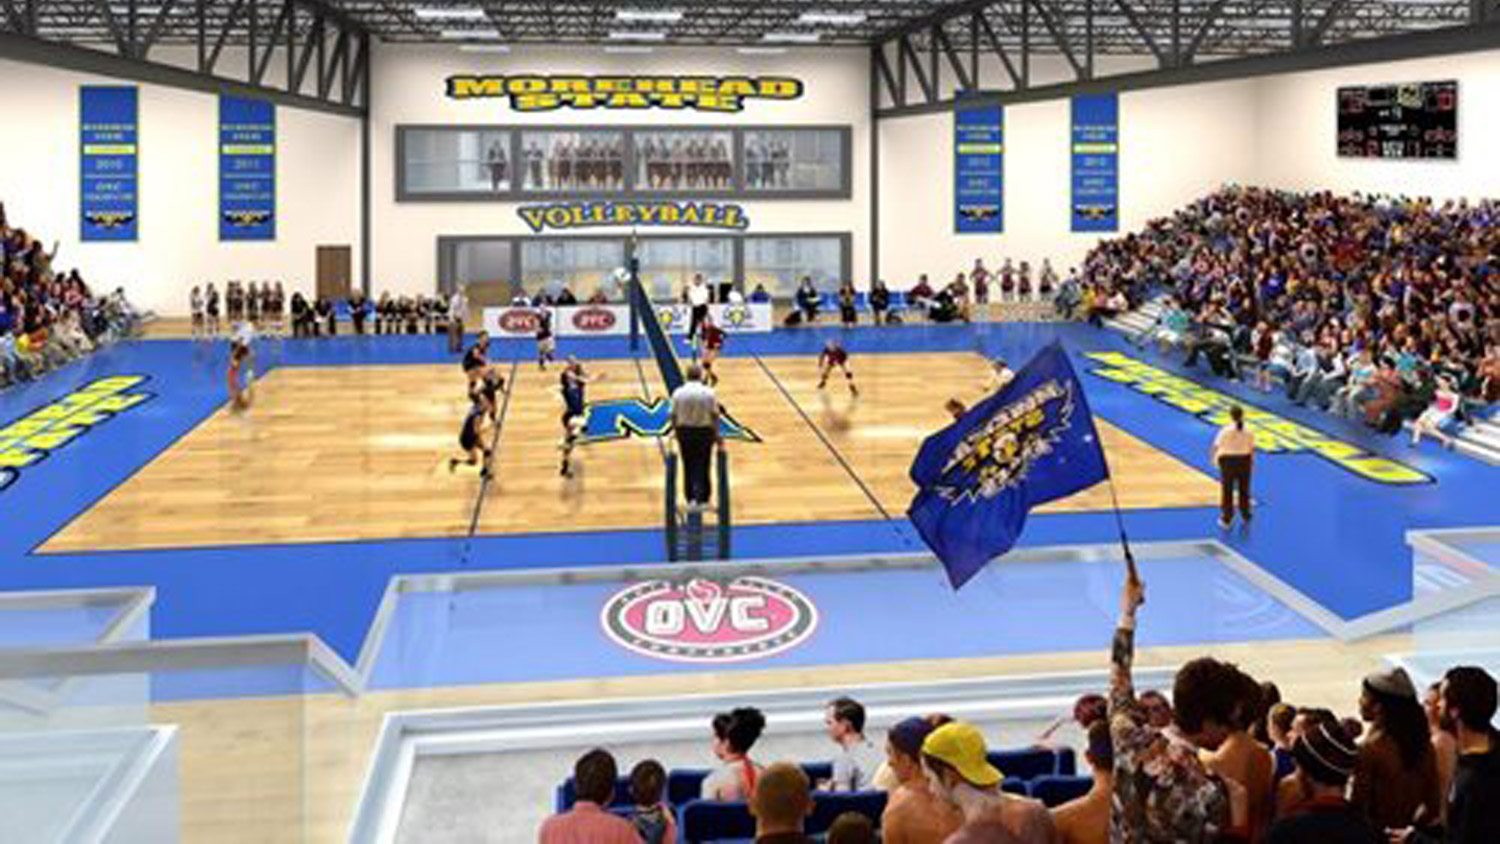 Morehead State Volleyball Facility